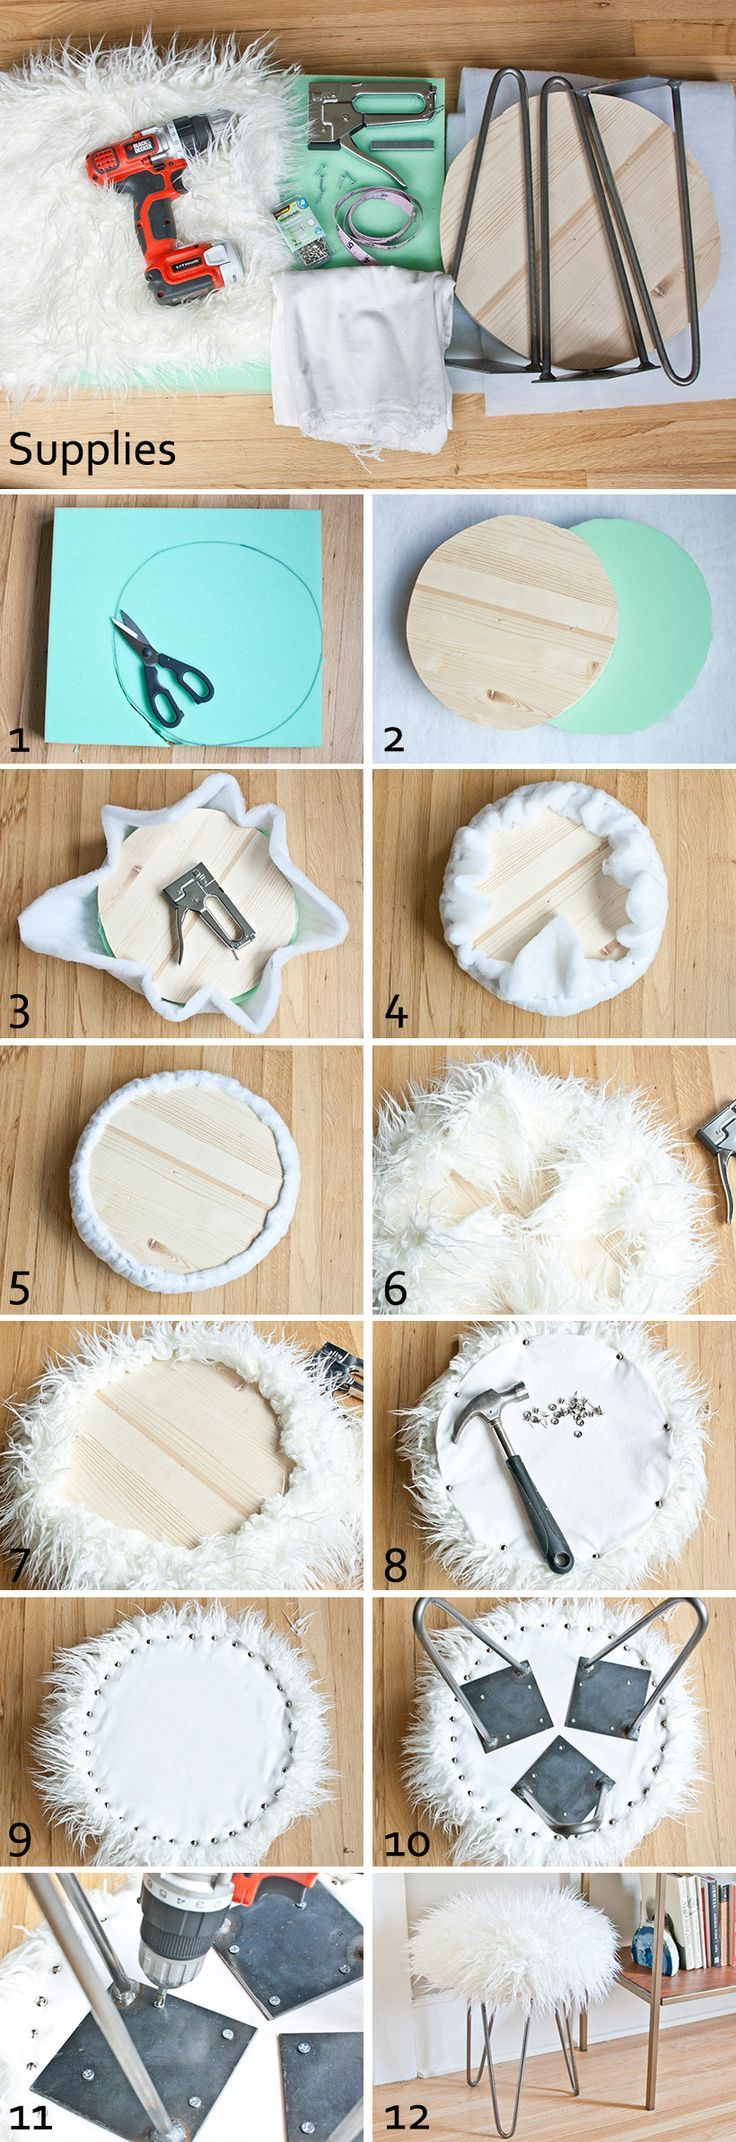 """<input type=""""hidden"""" value="""""""" data-frizzlyPostContainer="""""""" data-frizzlyPostUrl=""""http://www.amazinghousedesign.com/interior-design/diy-faux-fur-stool-maybe-could-expand-to-benches-for-the-foot-of-the-bed-in-the-girls-room/"""" data-frizzlyPostTitle=""""DIY faux fur stool"""